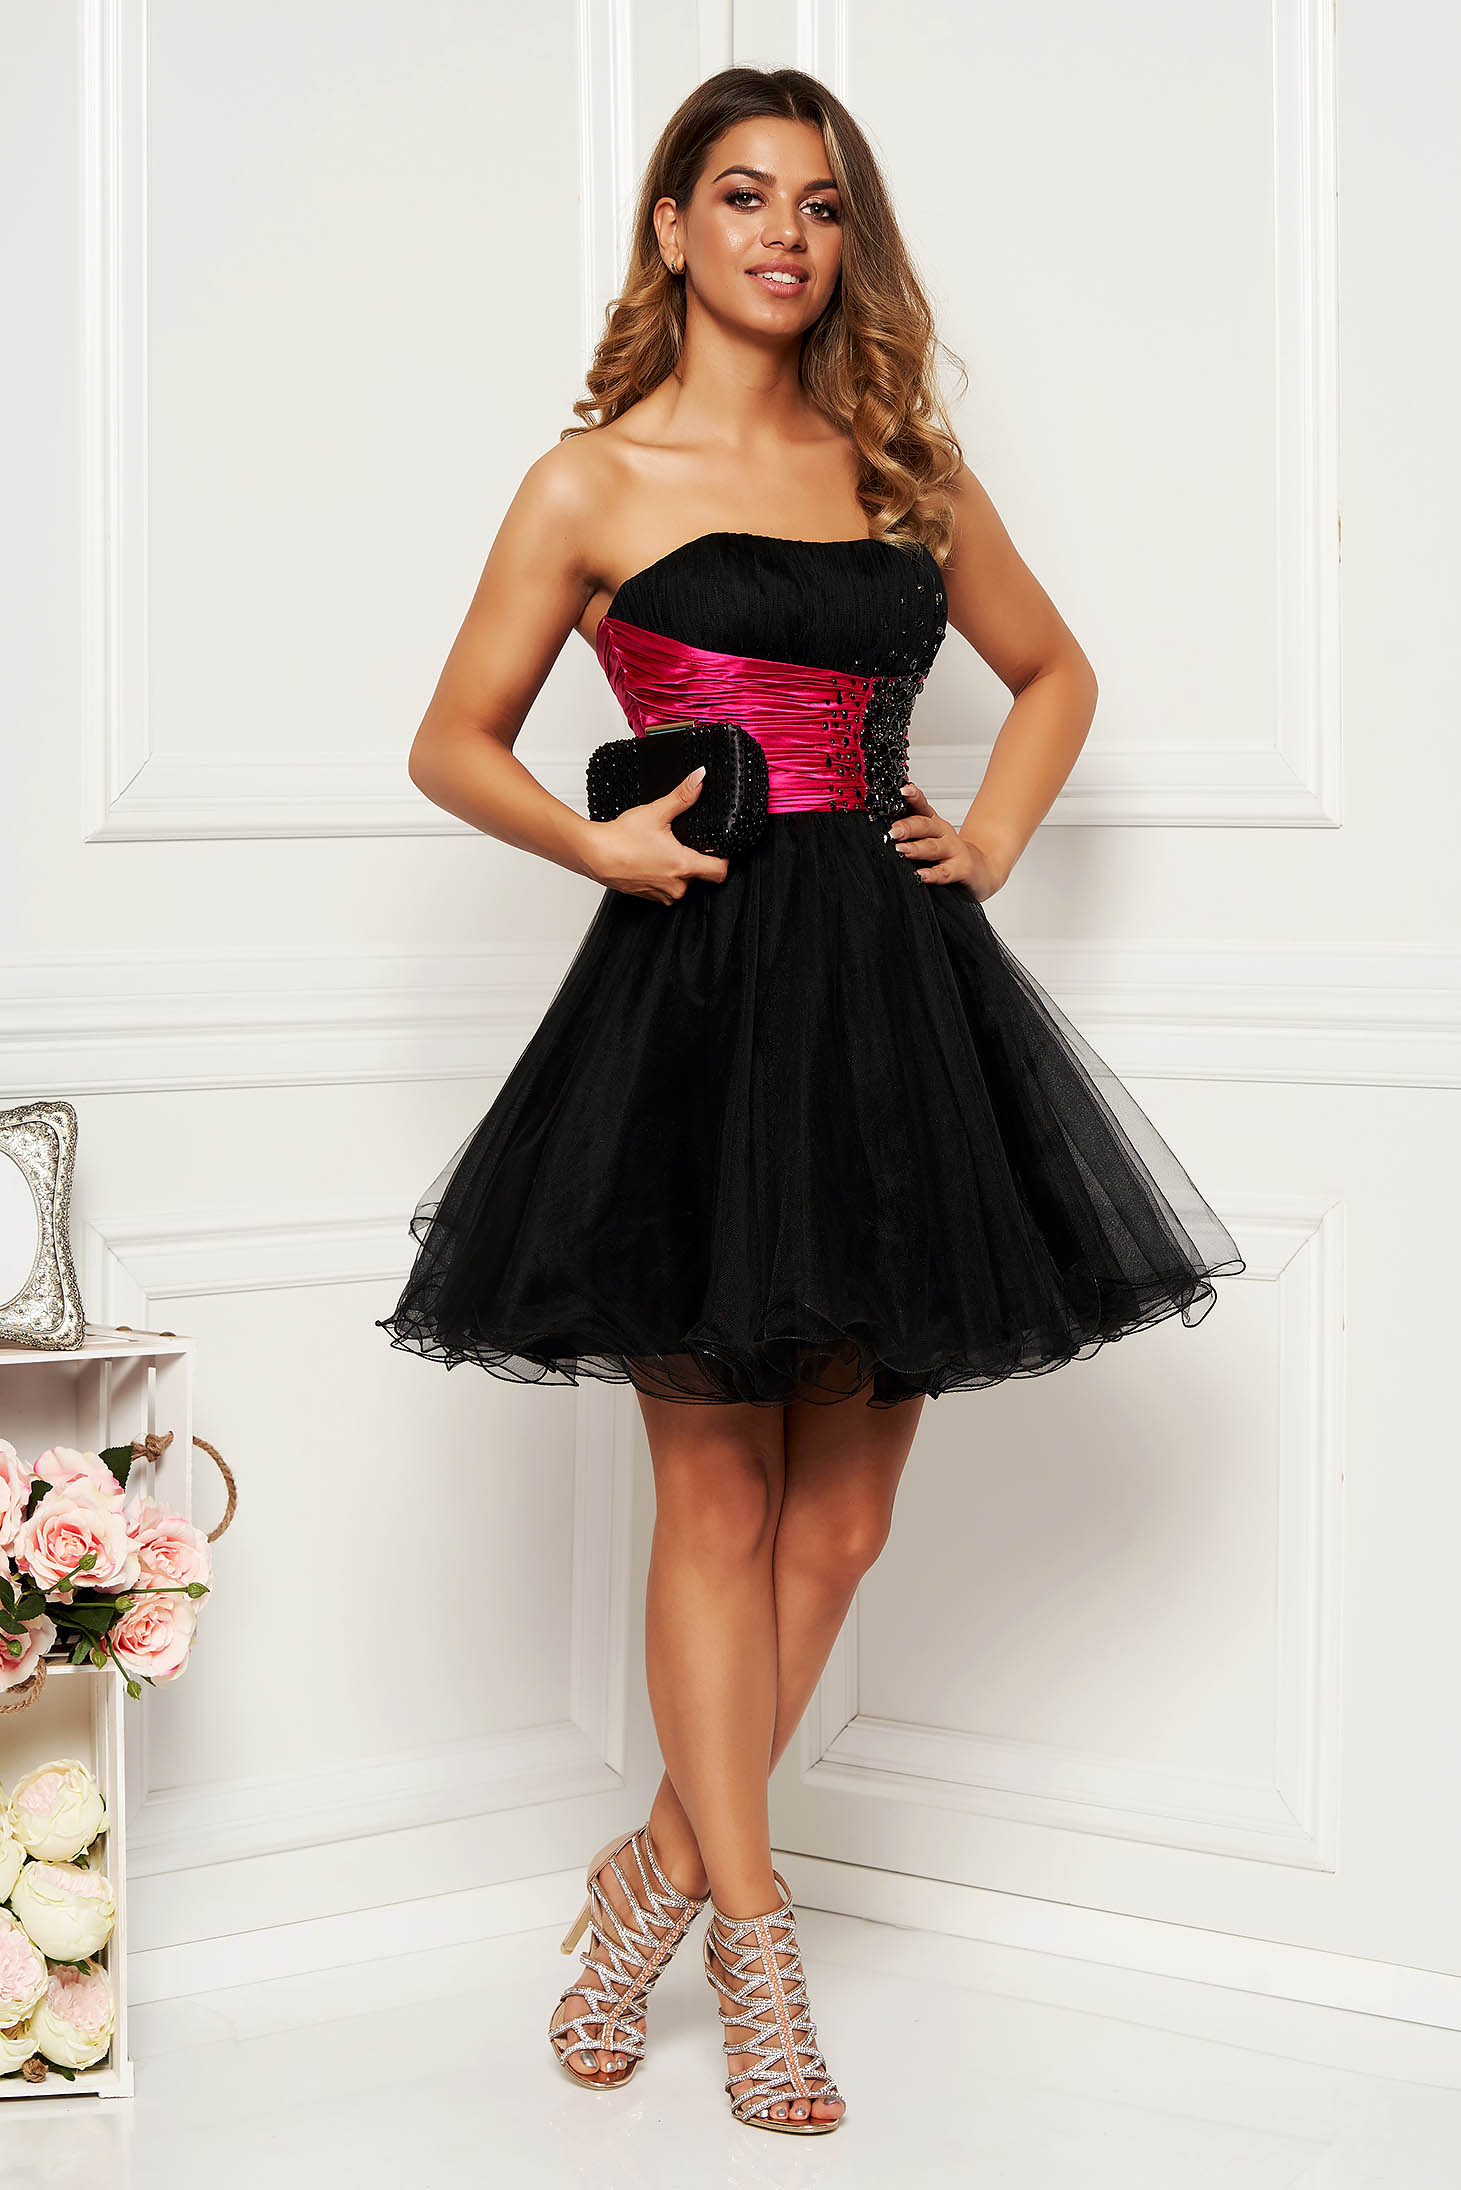 Sherri Hill fuchsia dress luxurious corset with crystal embellished details with push-up cups